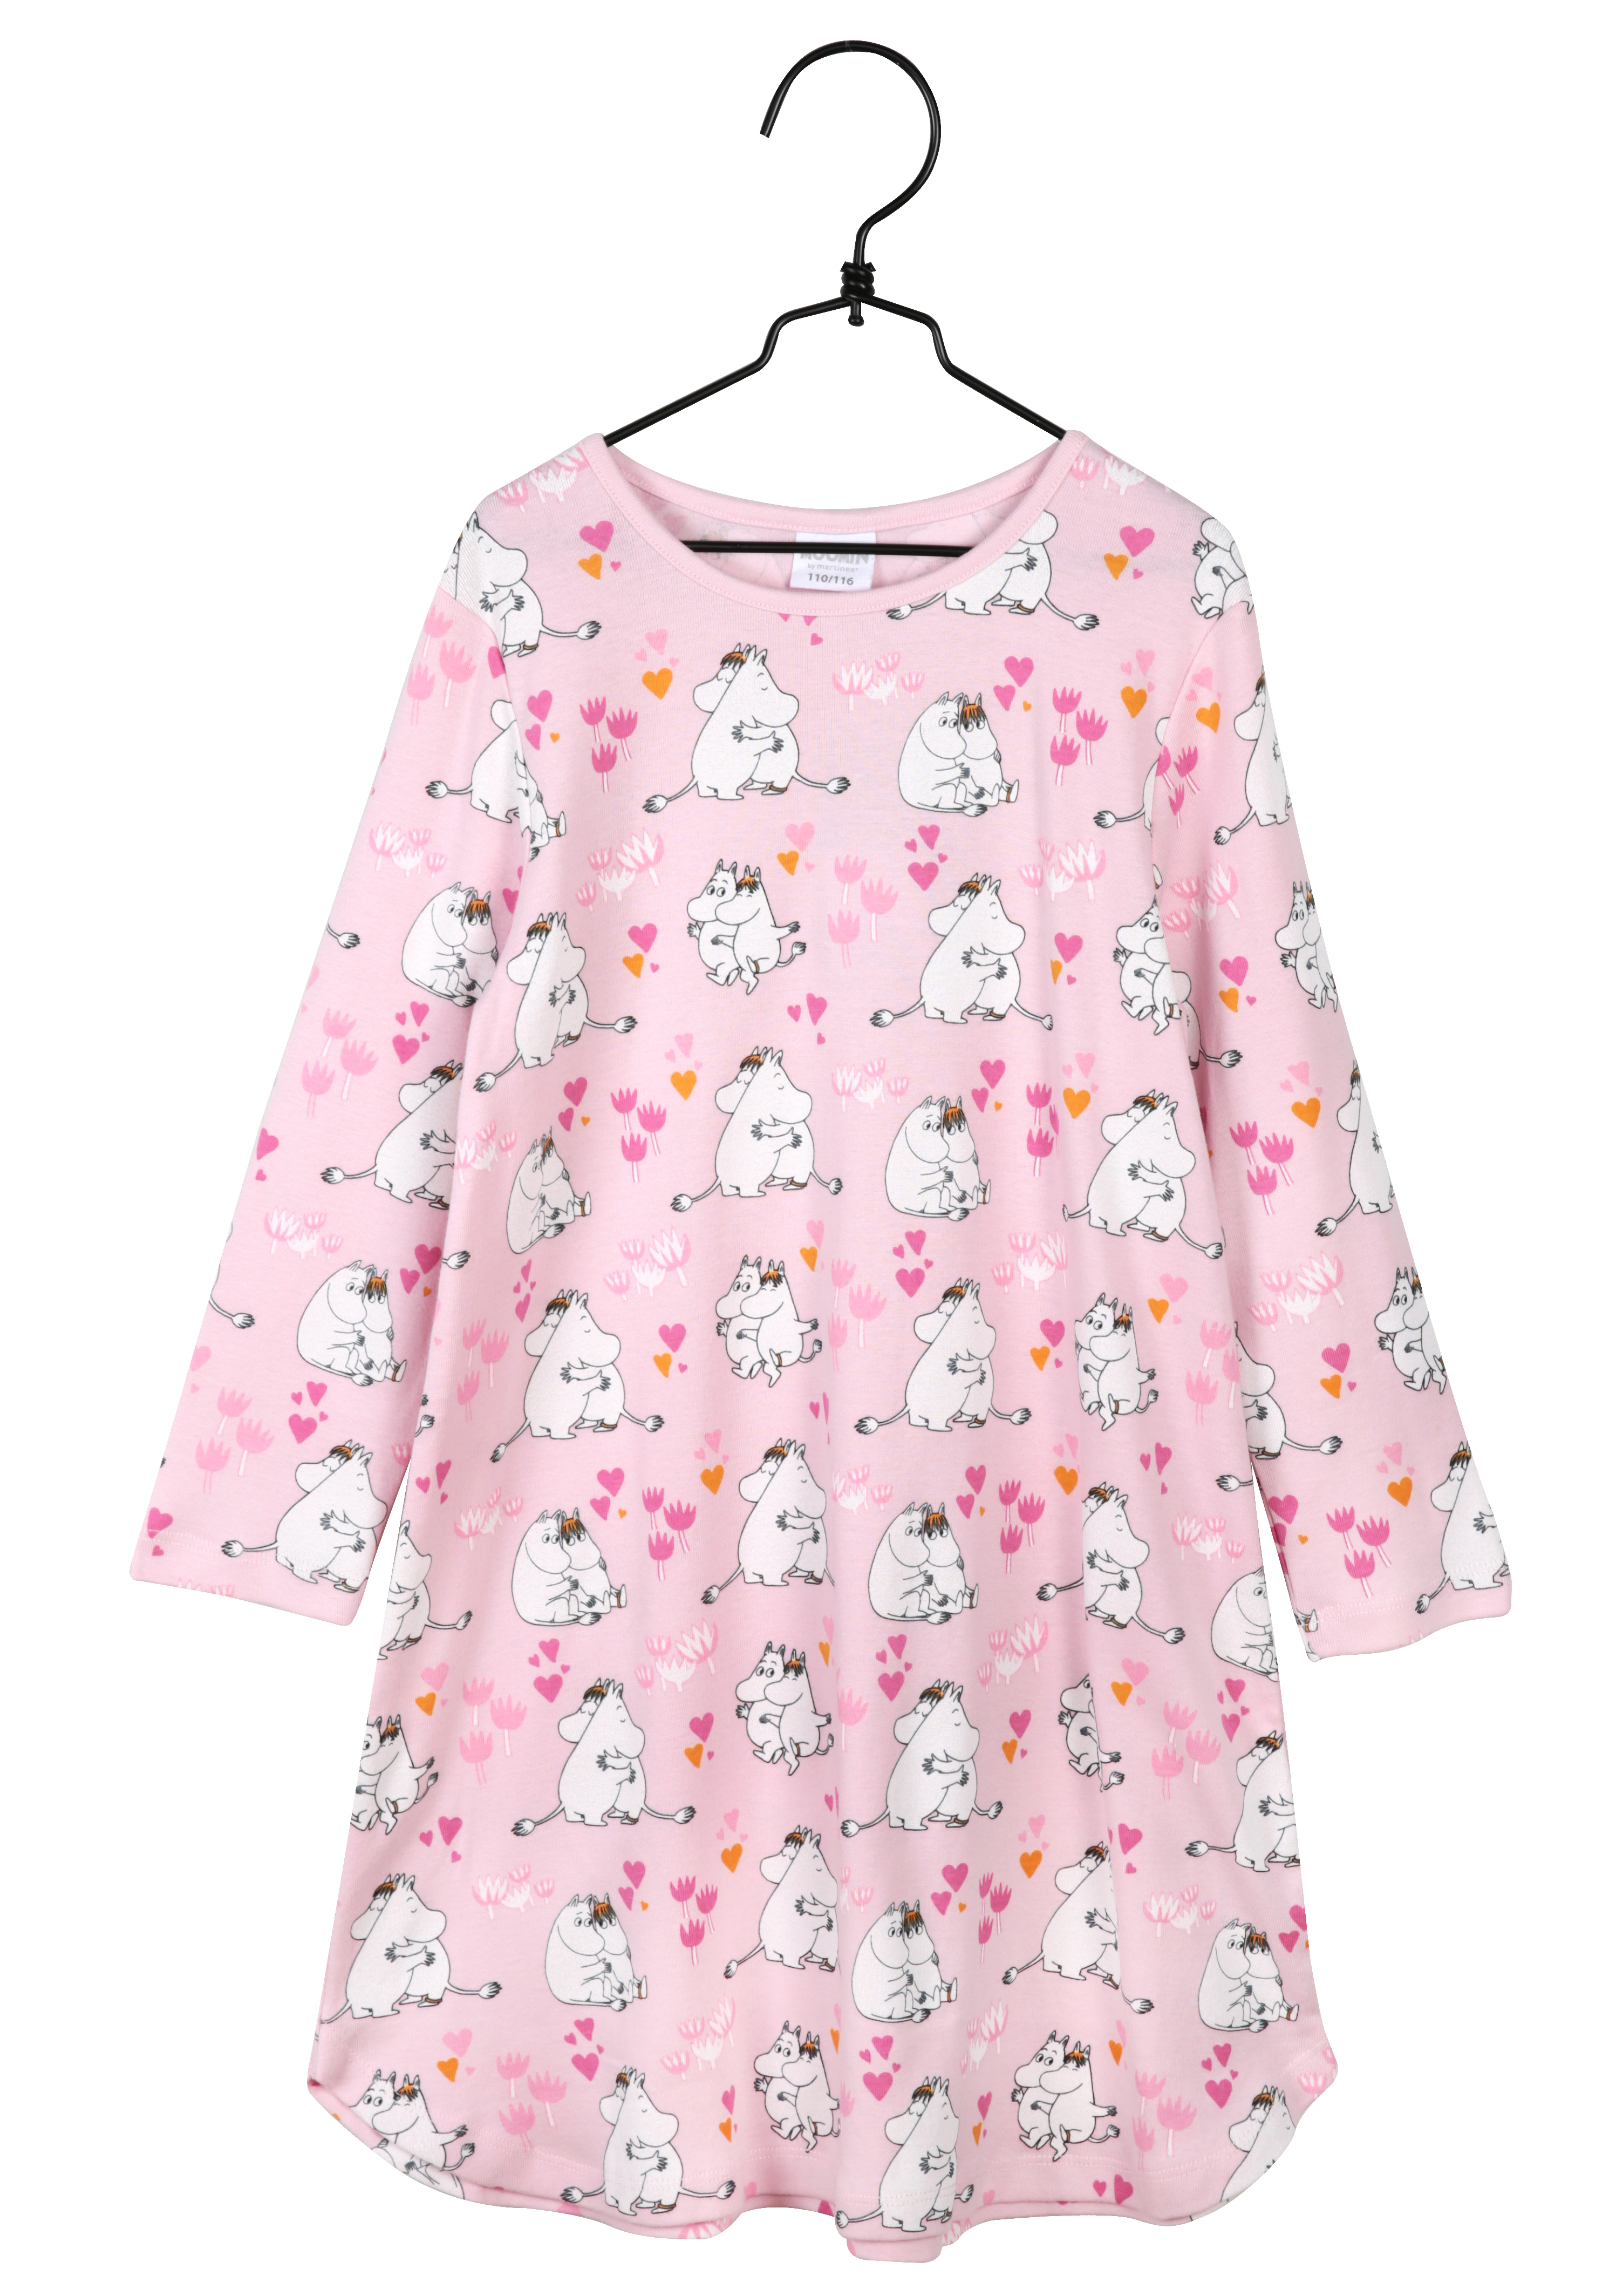 Martinex Love Long-Sleeve Nightgown Pink